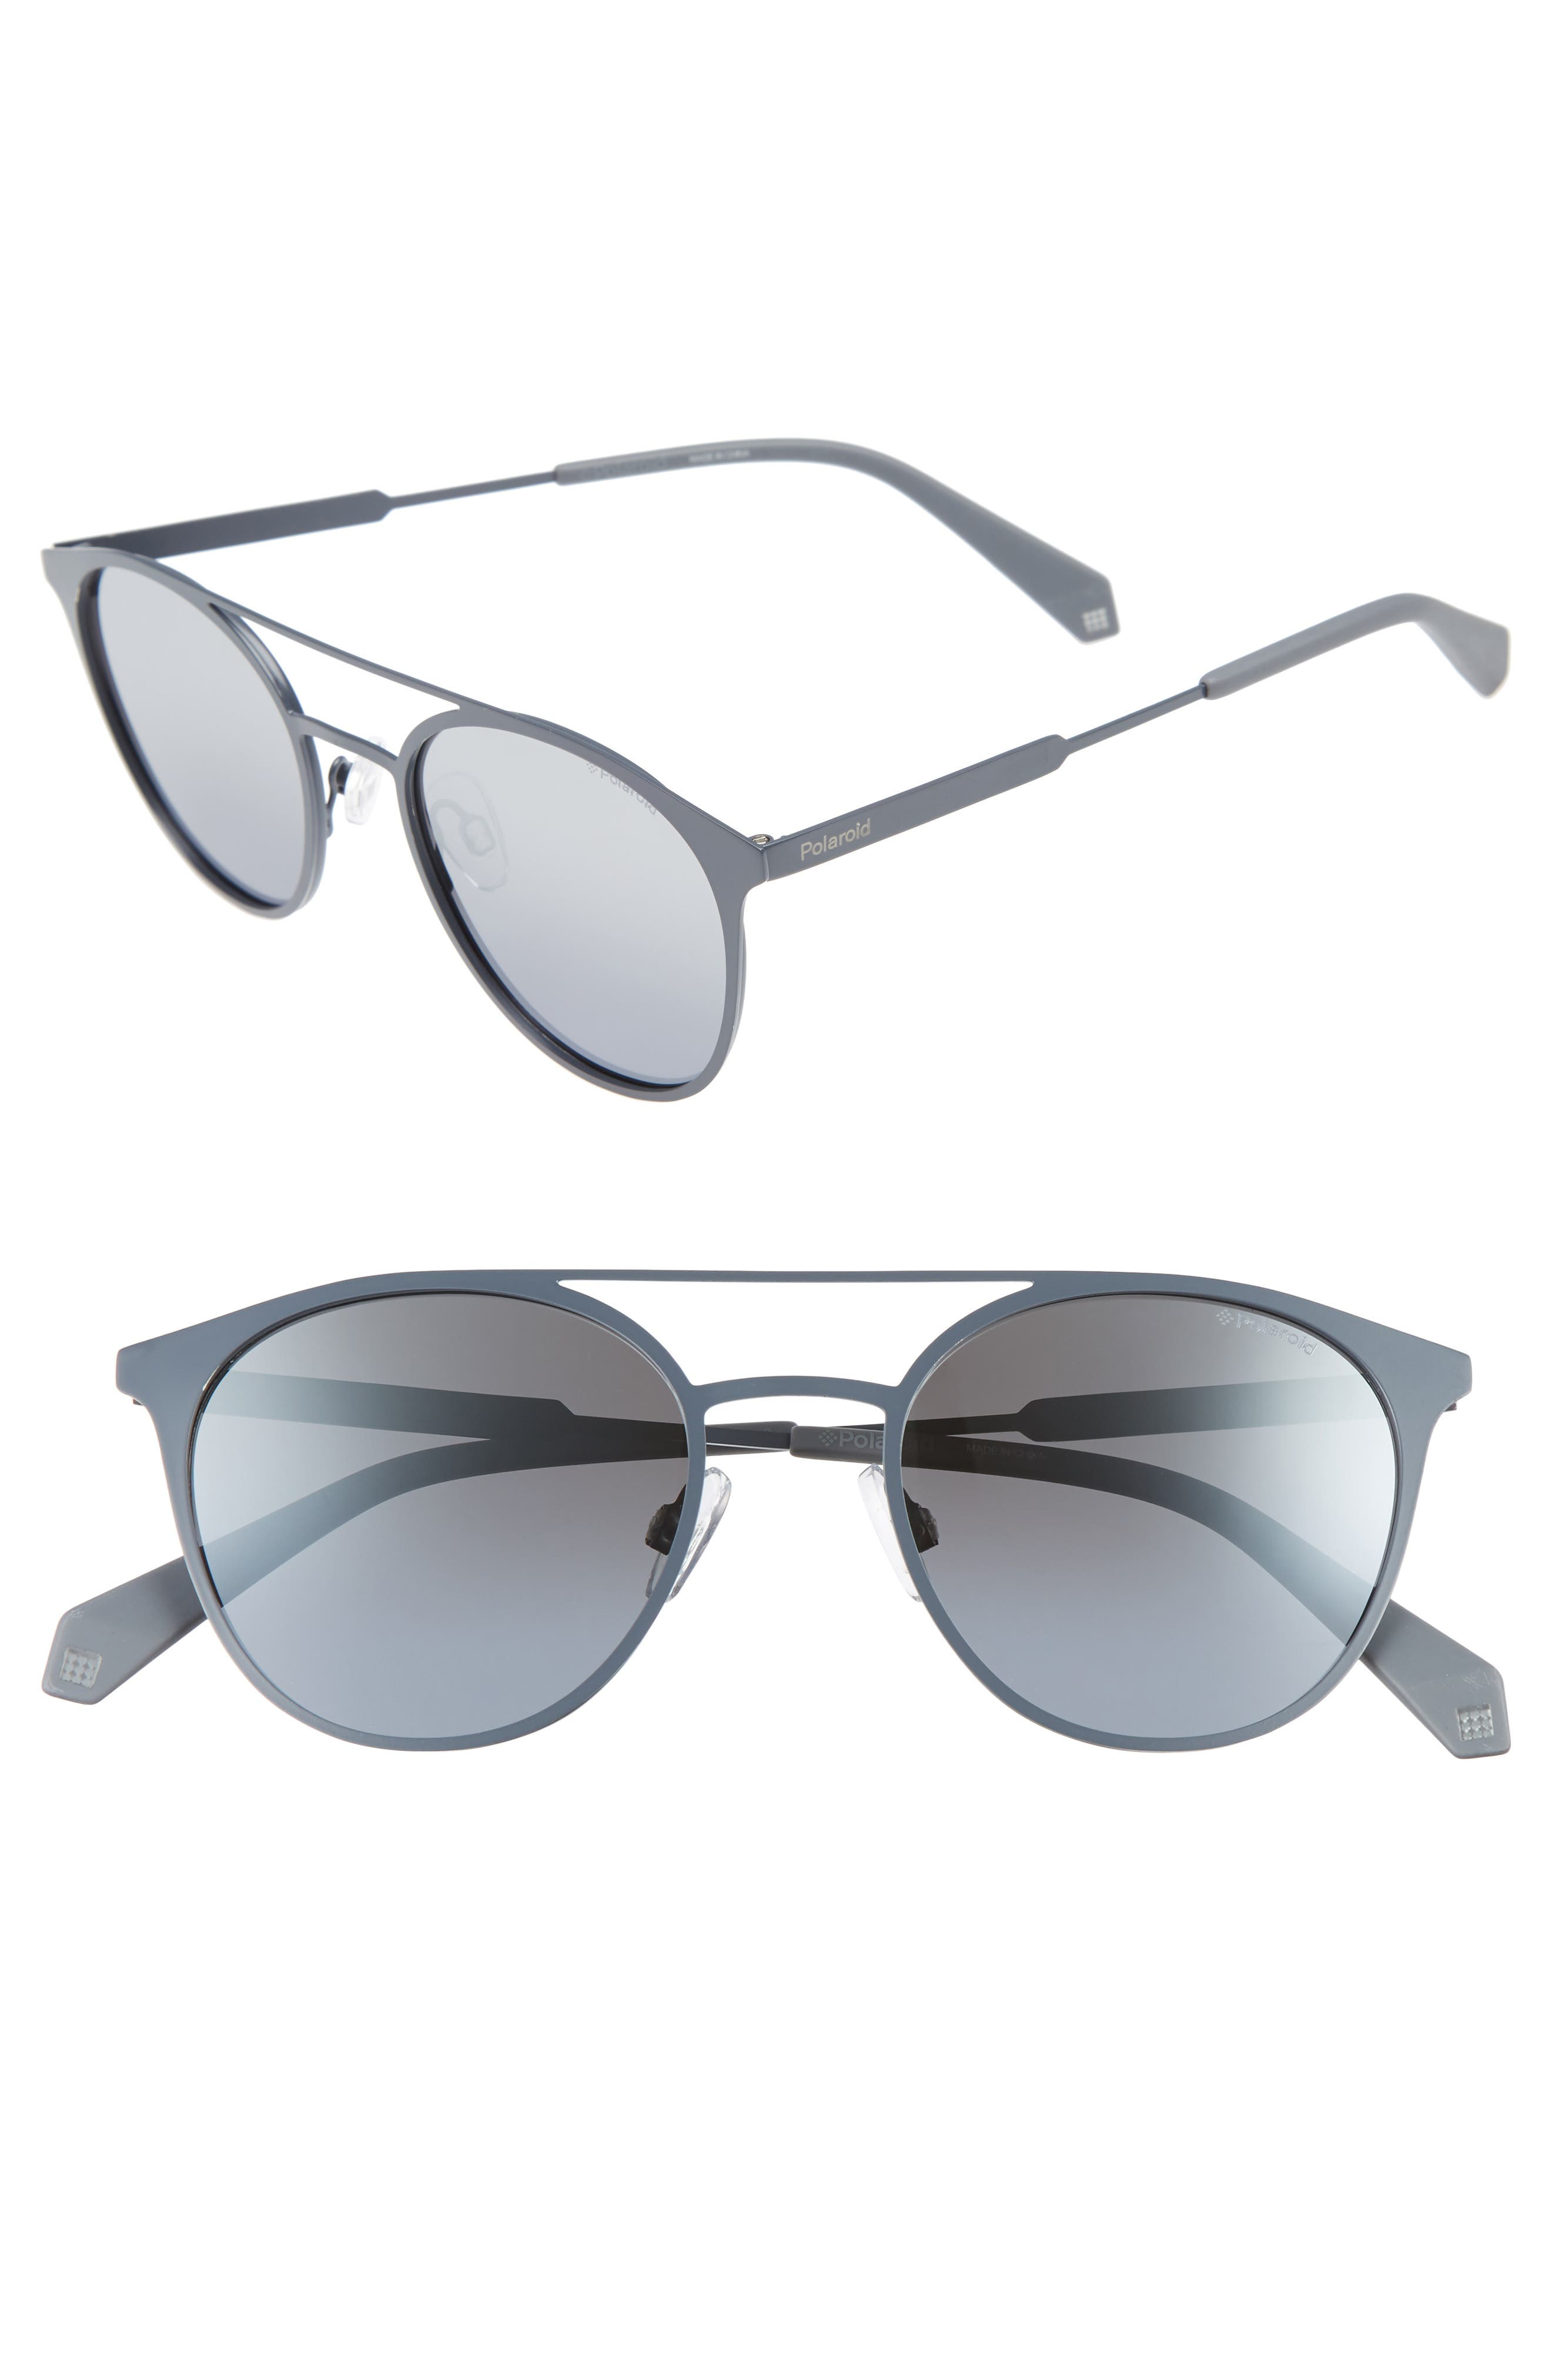 51mm Polarized Round Stainless Steel Sunglasses,                             Main thumbnail 2, color,